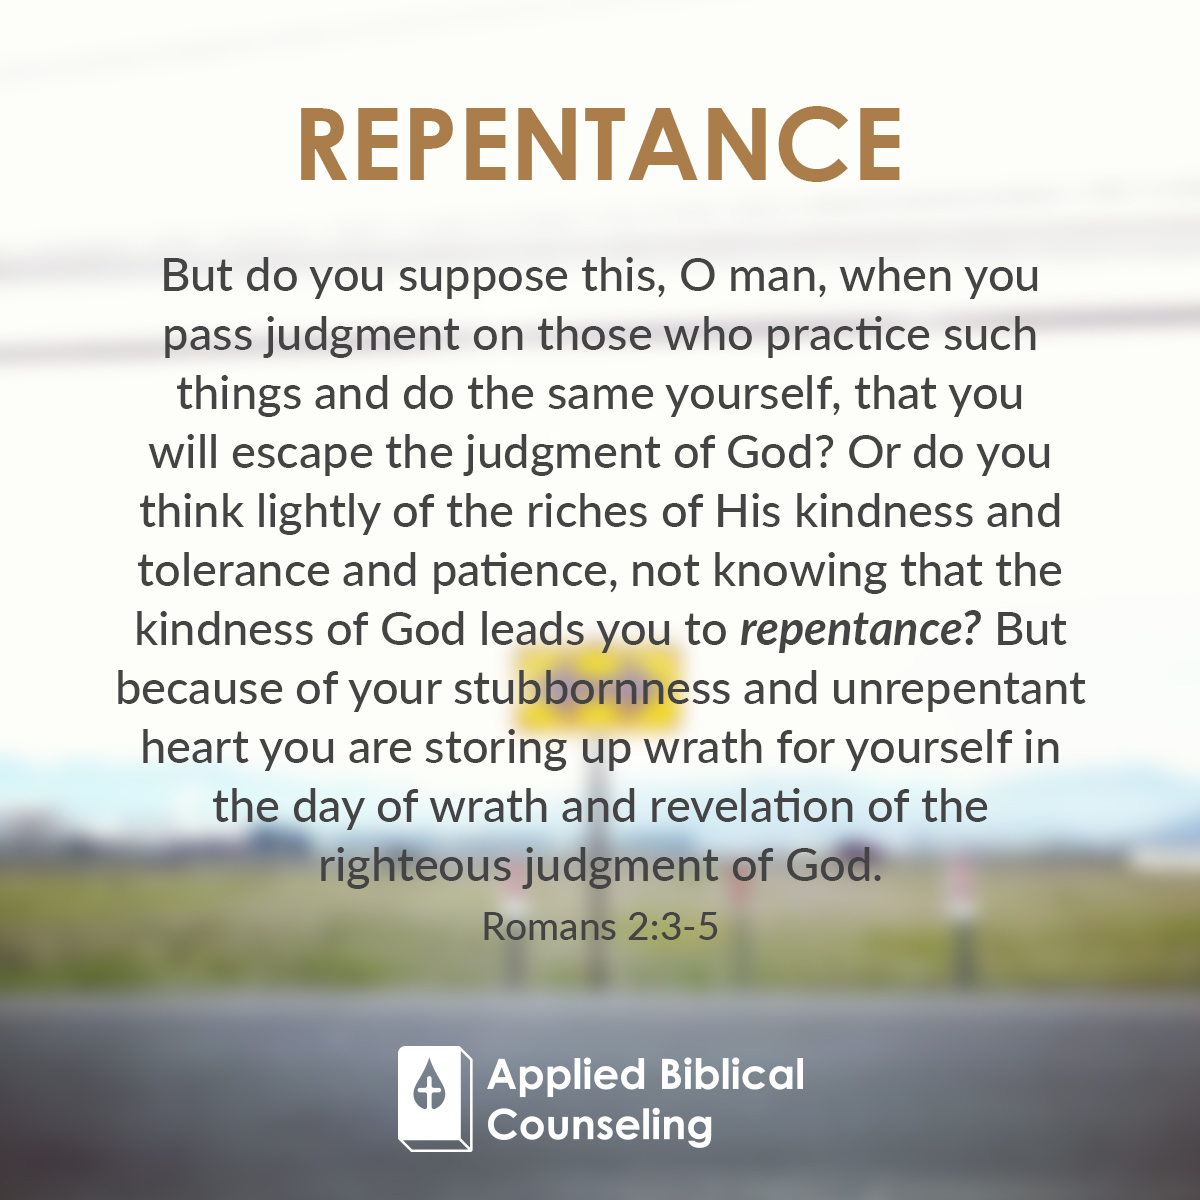 Applied Biblical Counseling Facebook w19 Repentance 4